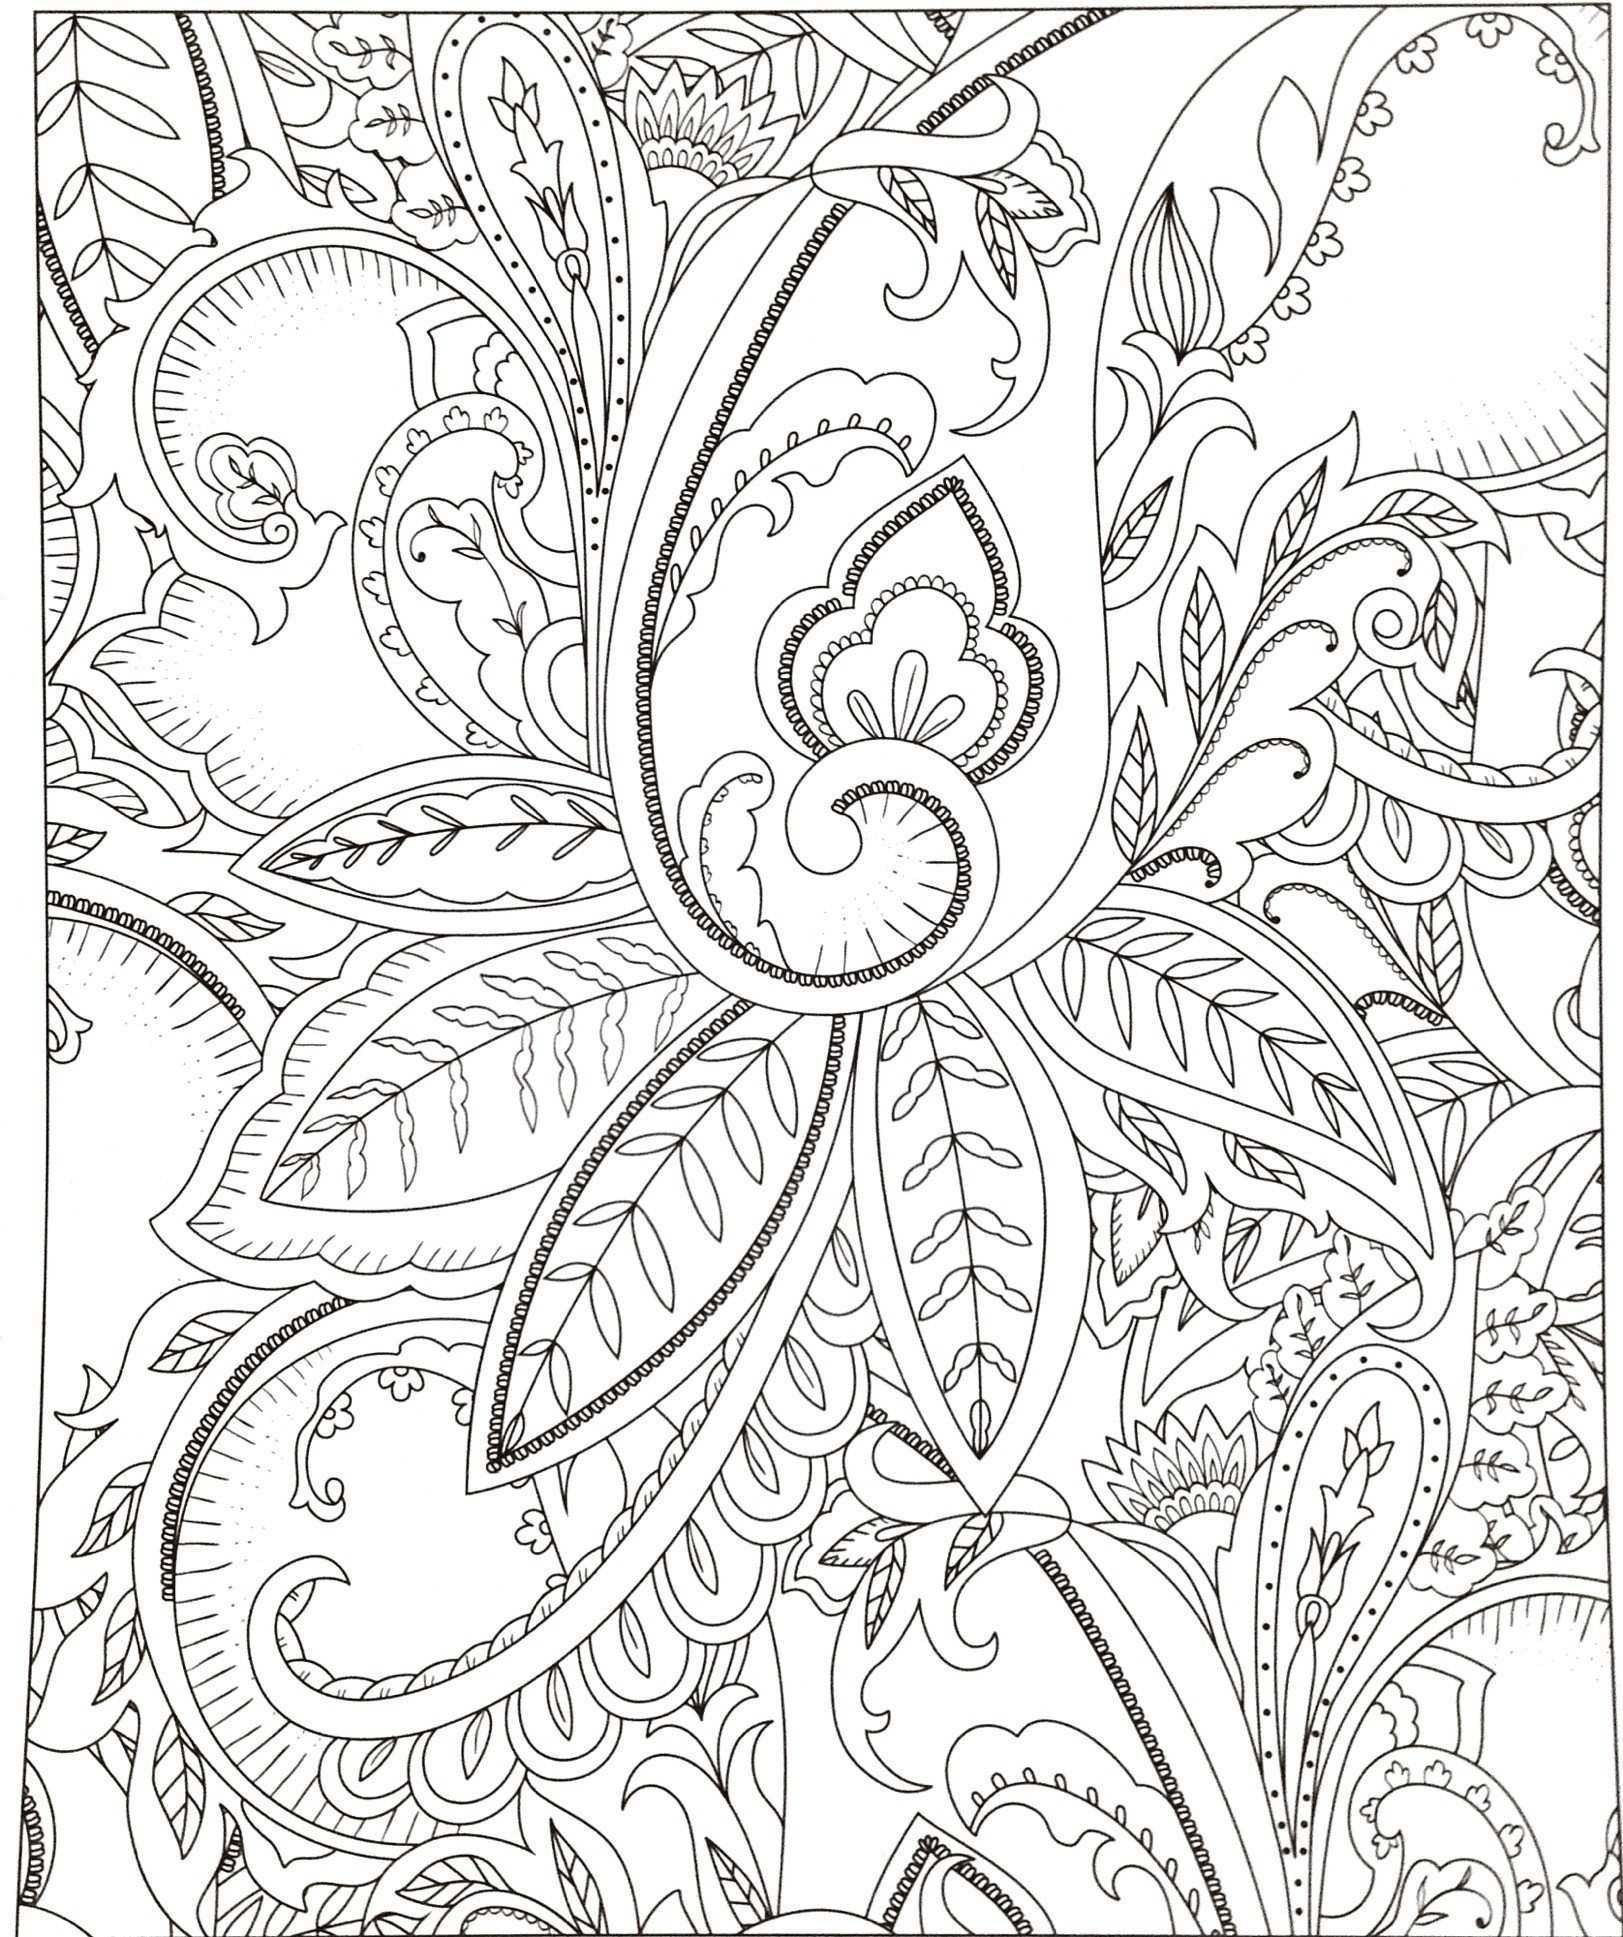 Stress Relief Coloring Pages Stress Coloring Pages Luxury Stress Relieving Coloring Books New Mandala Coloring Pages Coloring Pages Inspirational Printable Flower Coloring Pages